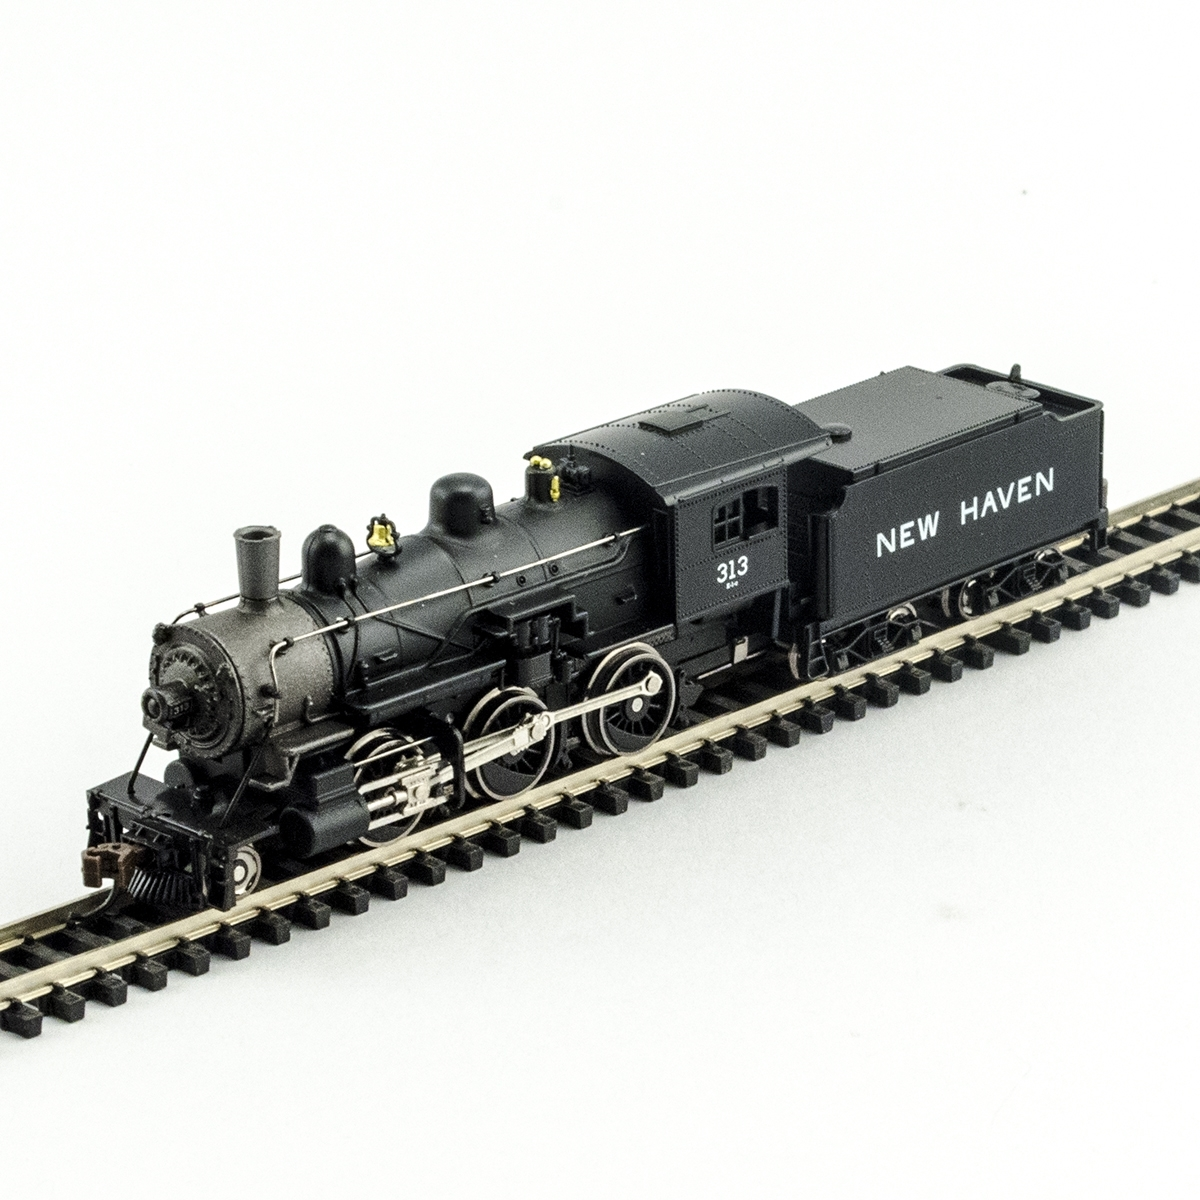 N Scale - Model Power - 876171 - Locomotive, Steam, 2-6-0 Mogul - New Haven - 313